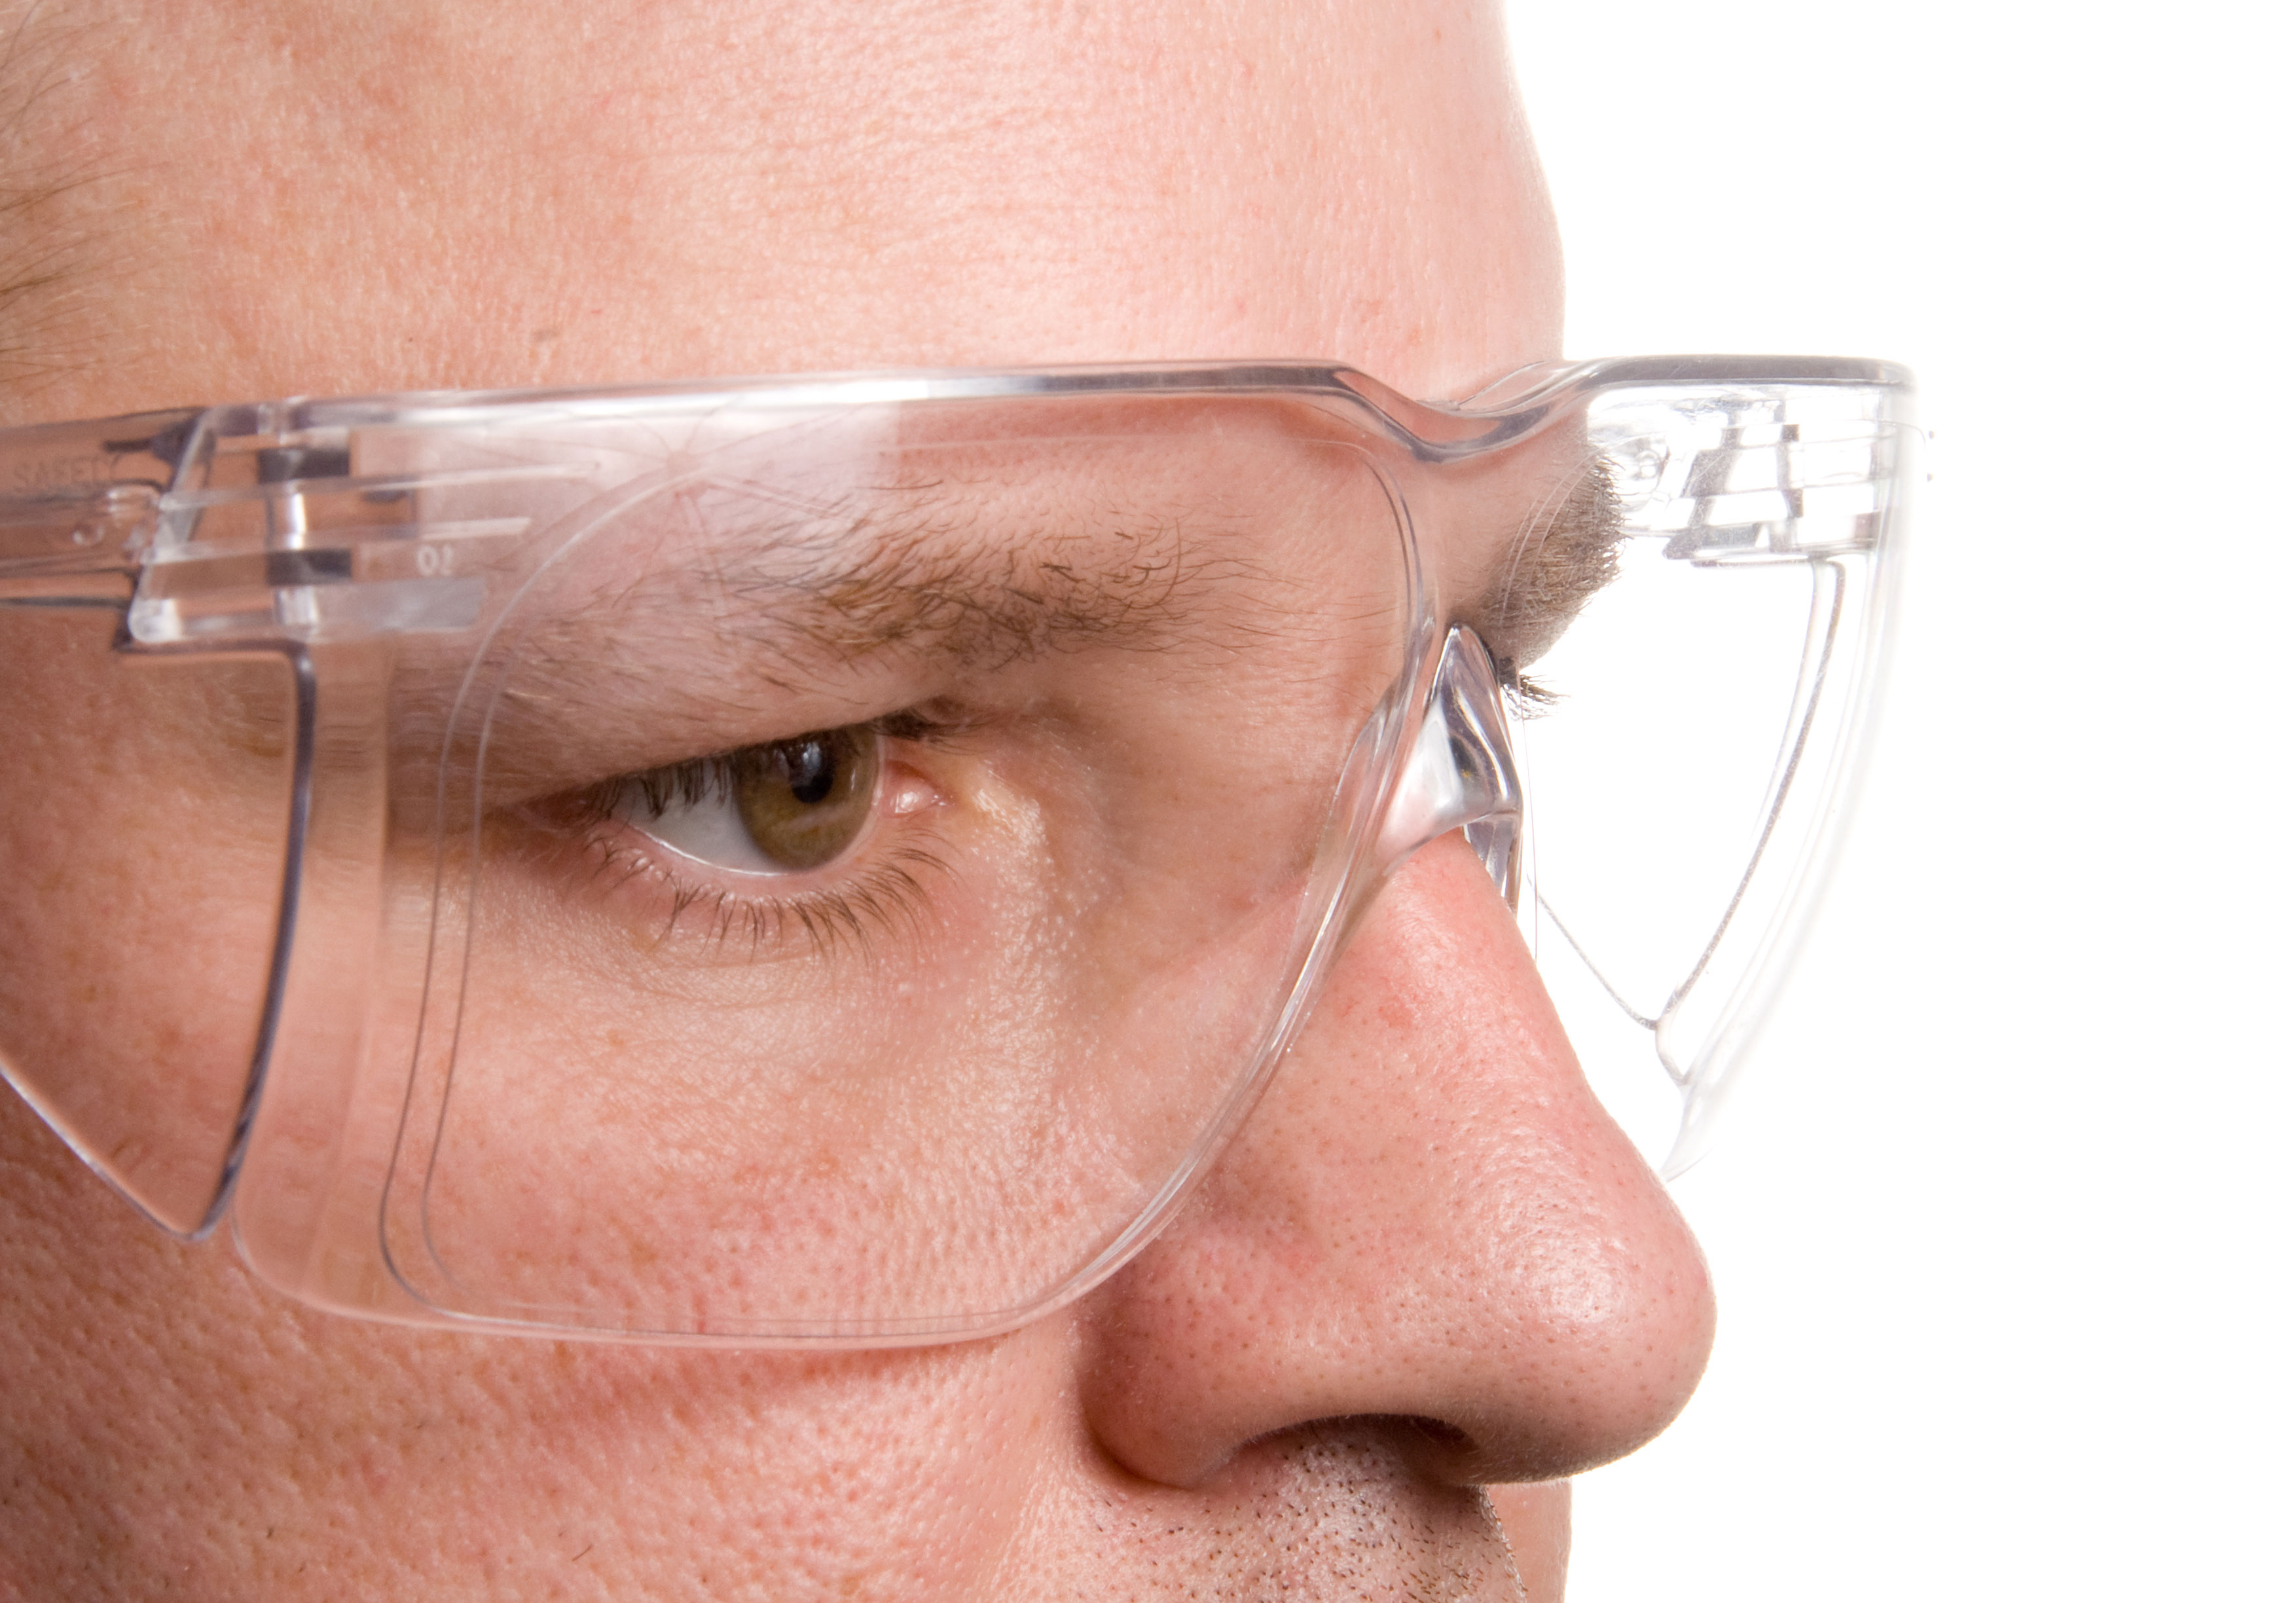 ab90eefd863 Looking For Safety Glasses  Visit Our Opticals Today!